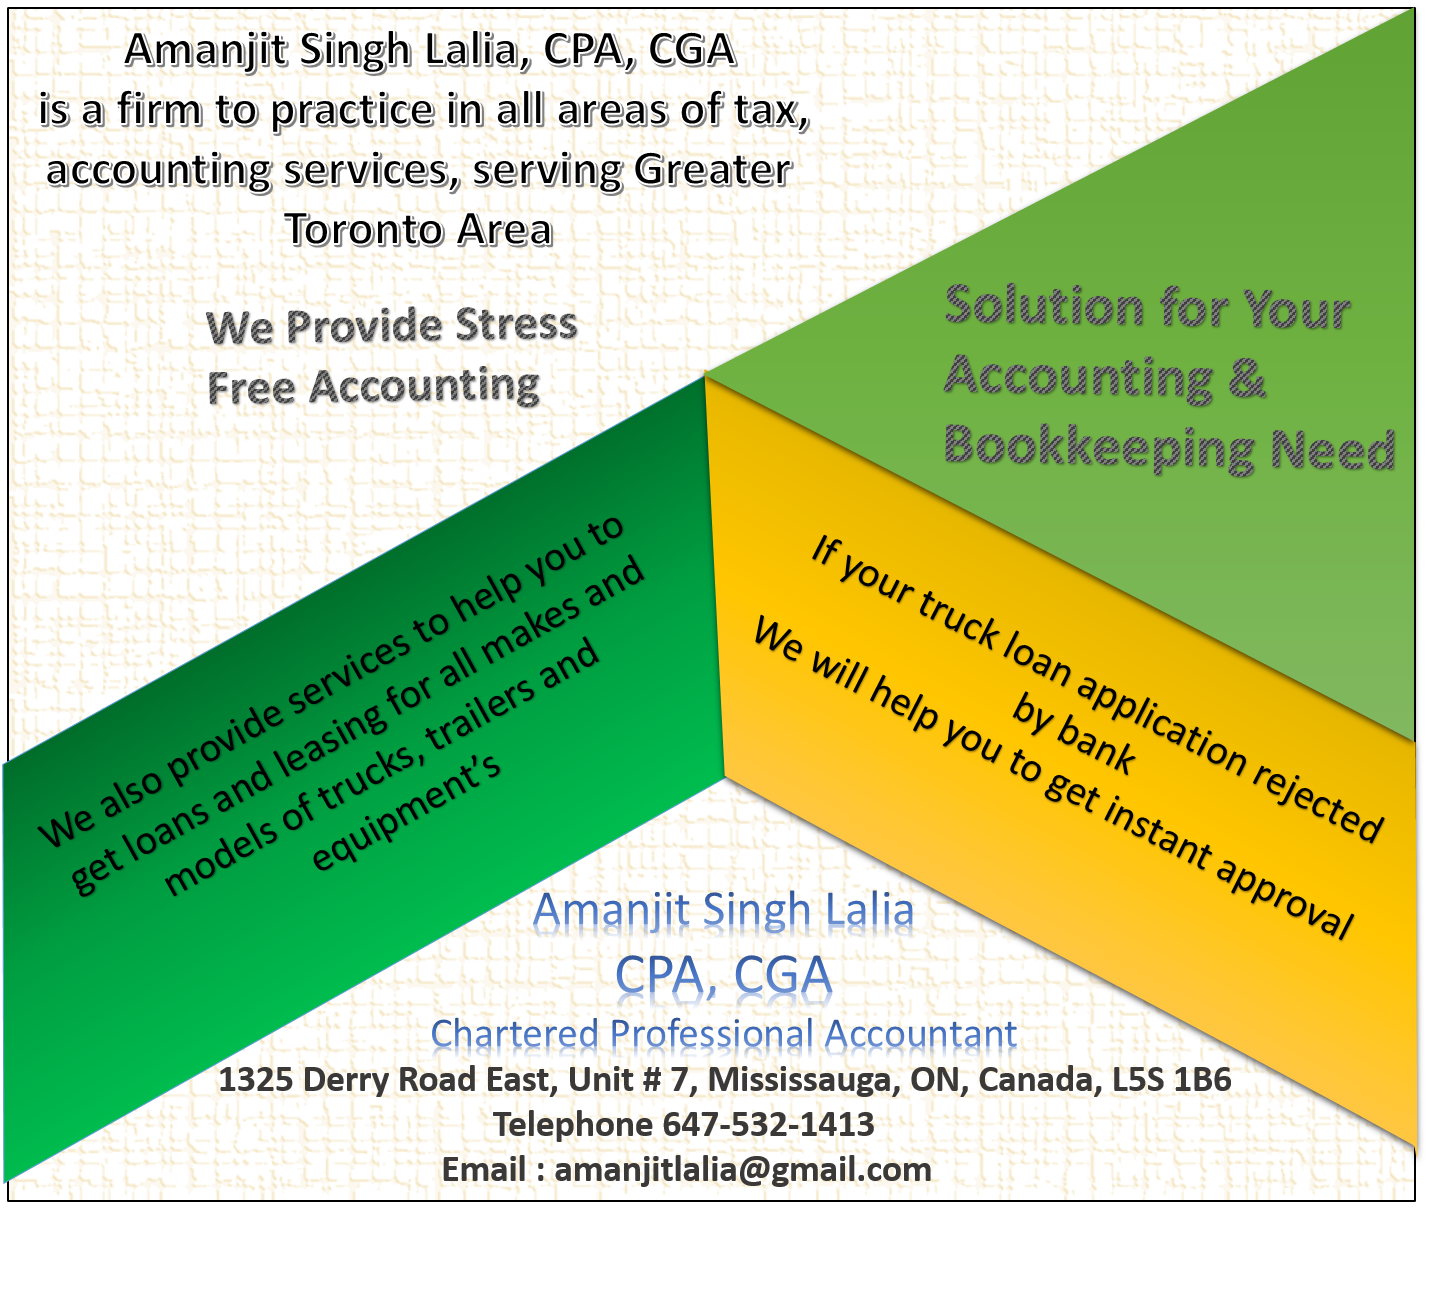 Amanjit Singh Lalia, CPA, CGA is a firm to practice in all areas of ...